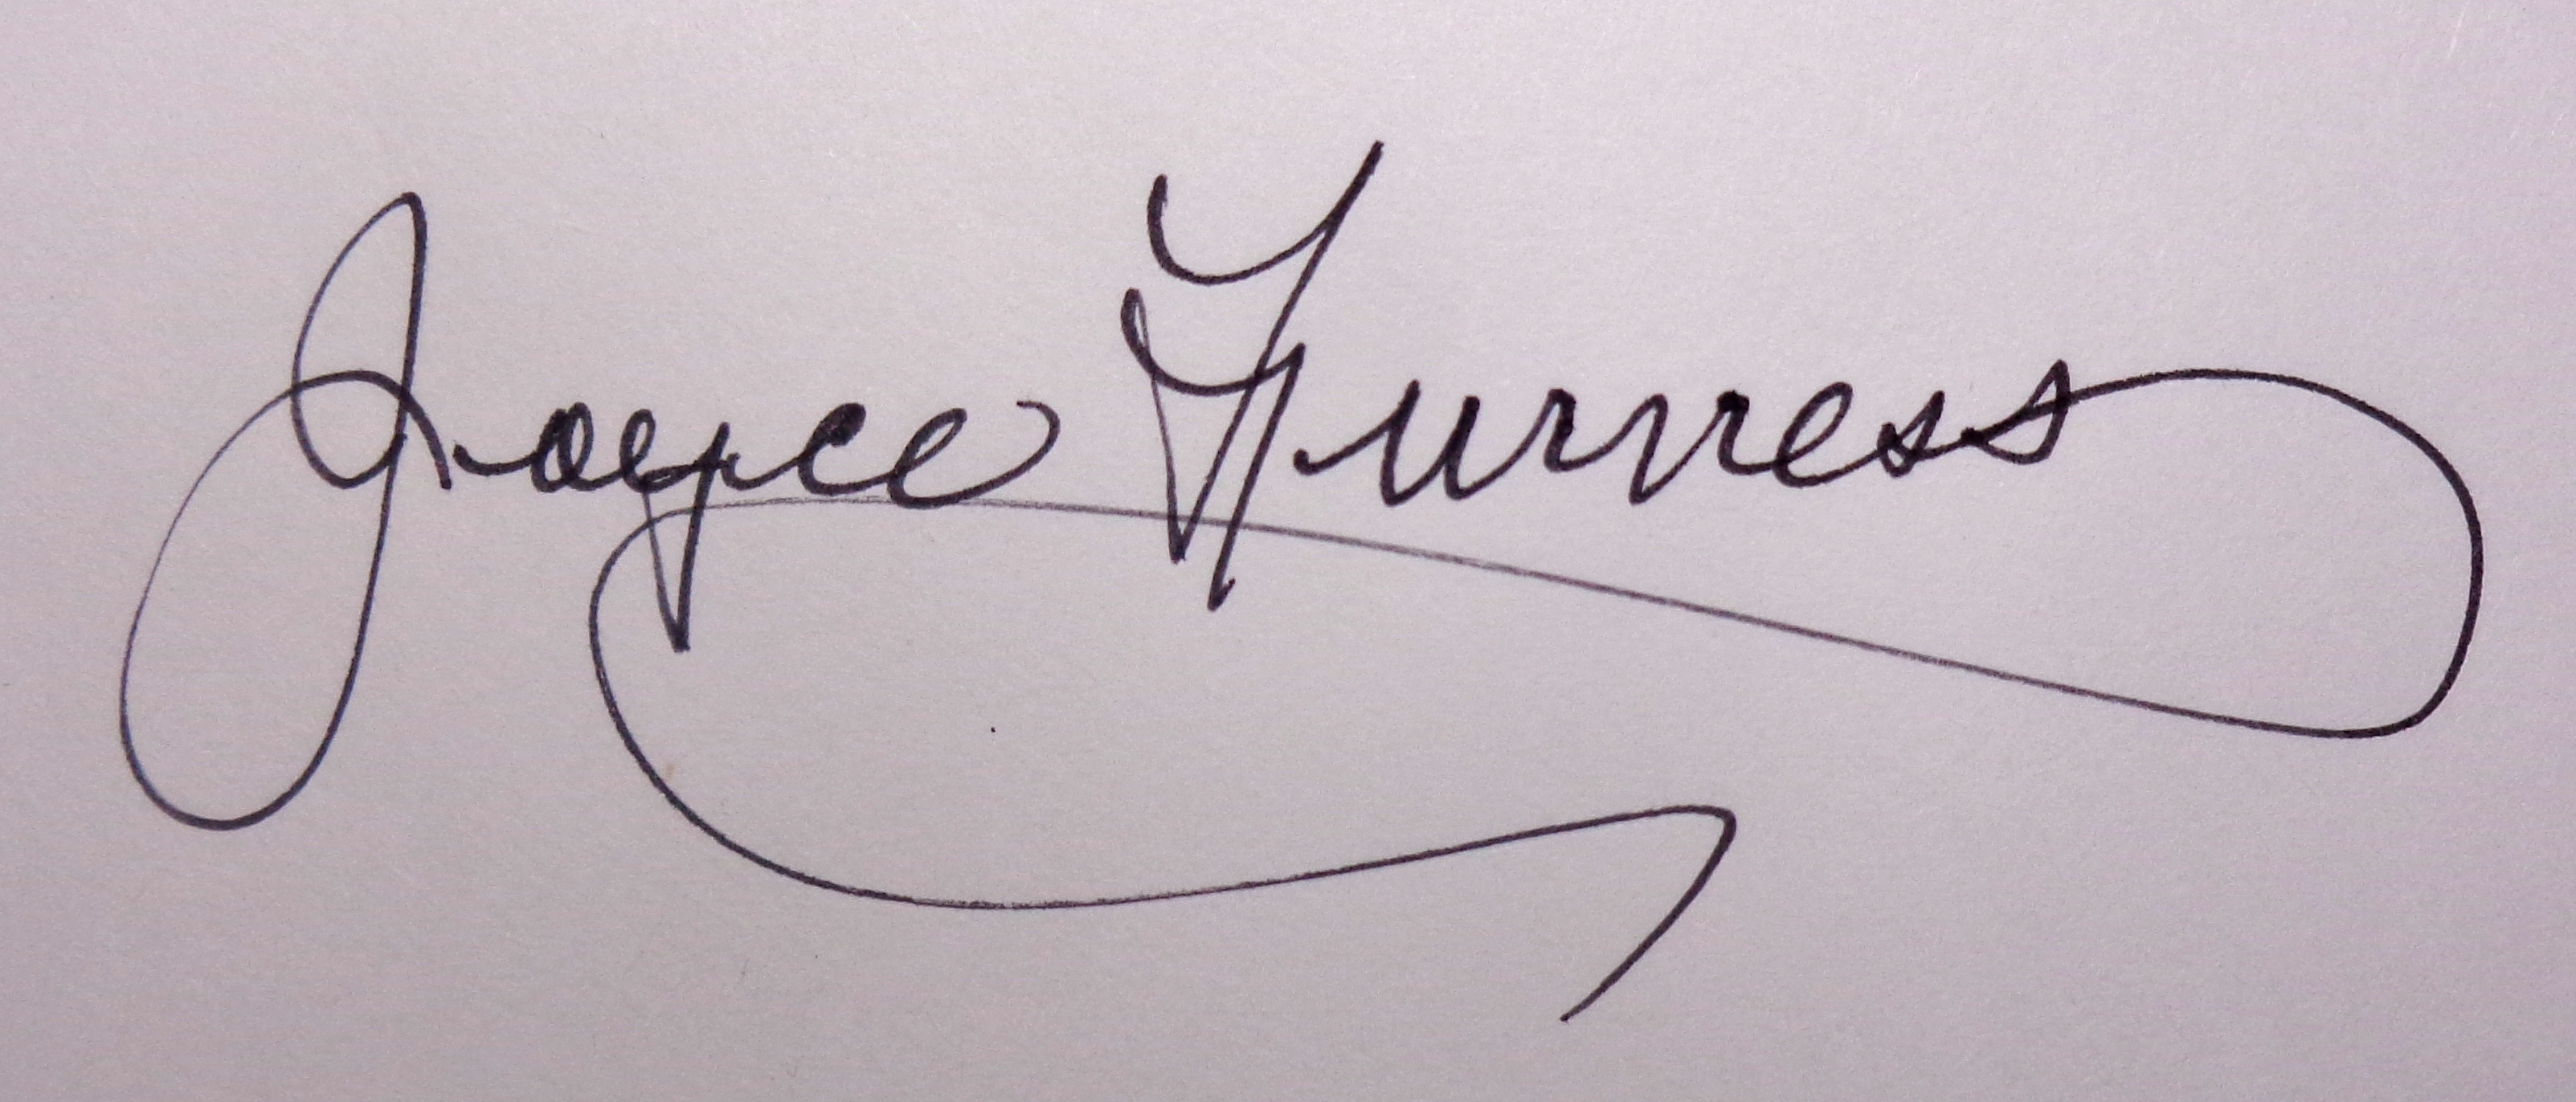 Joyce Furness's Signature